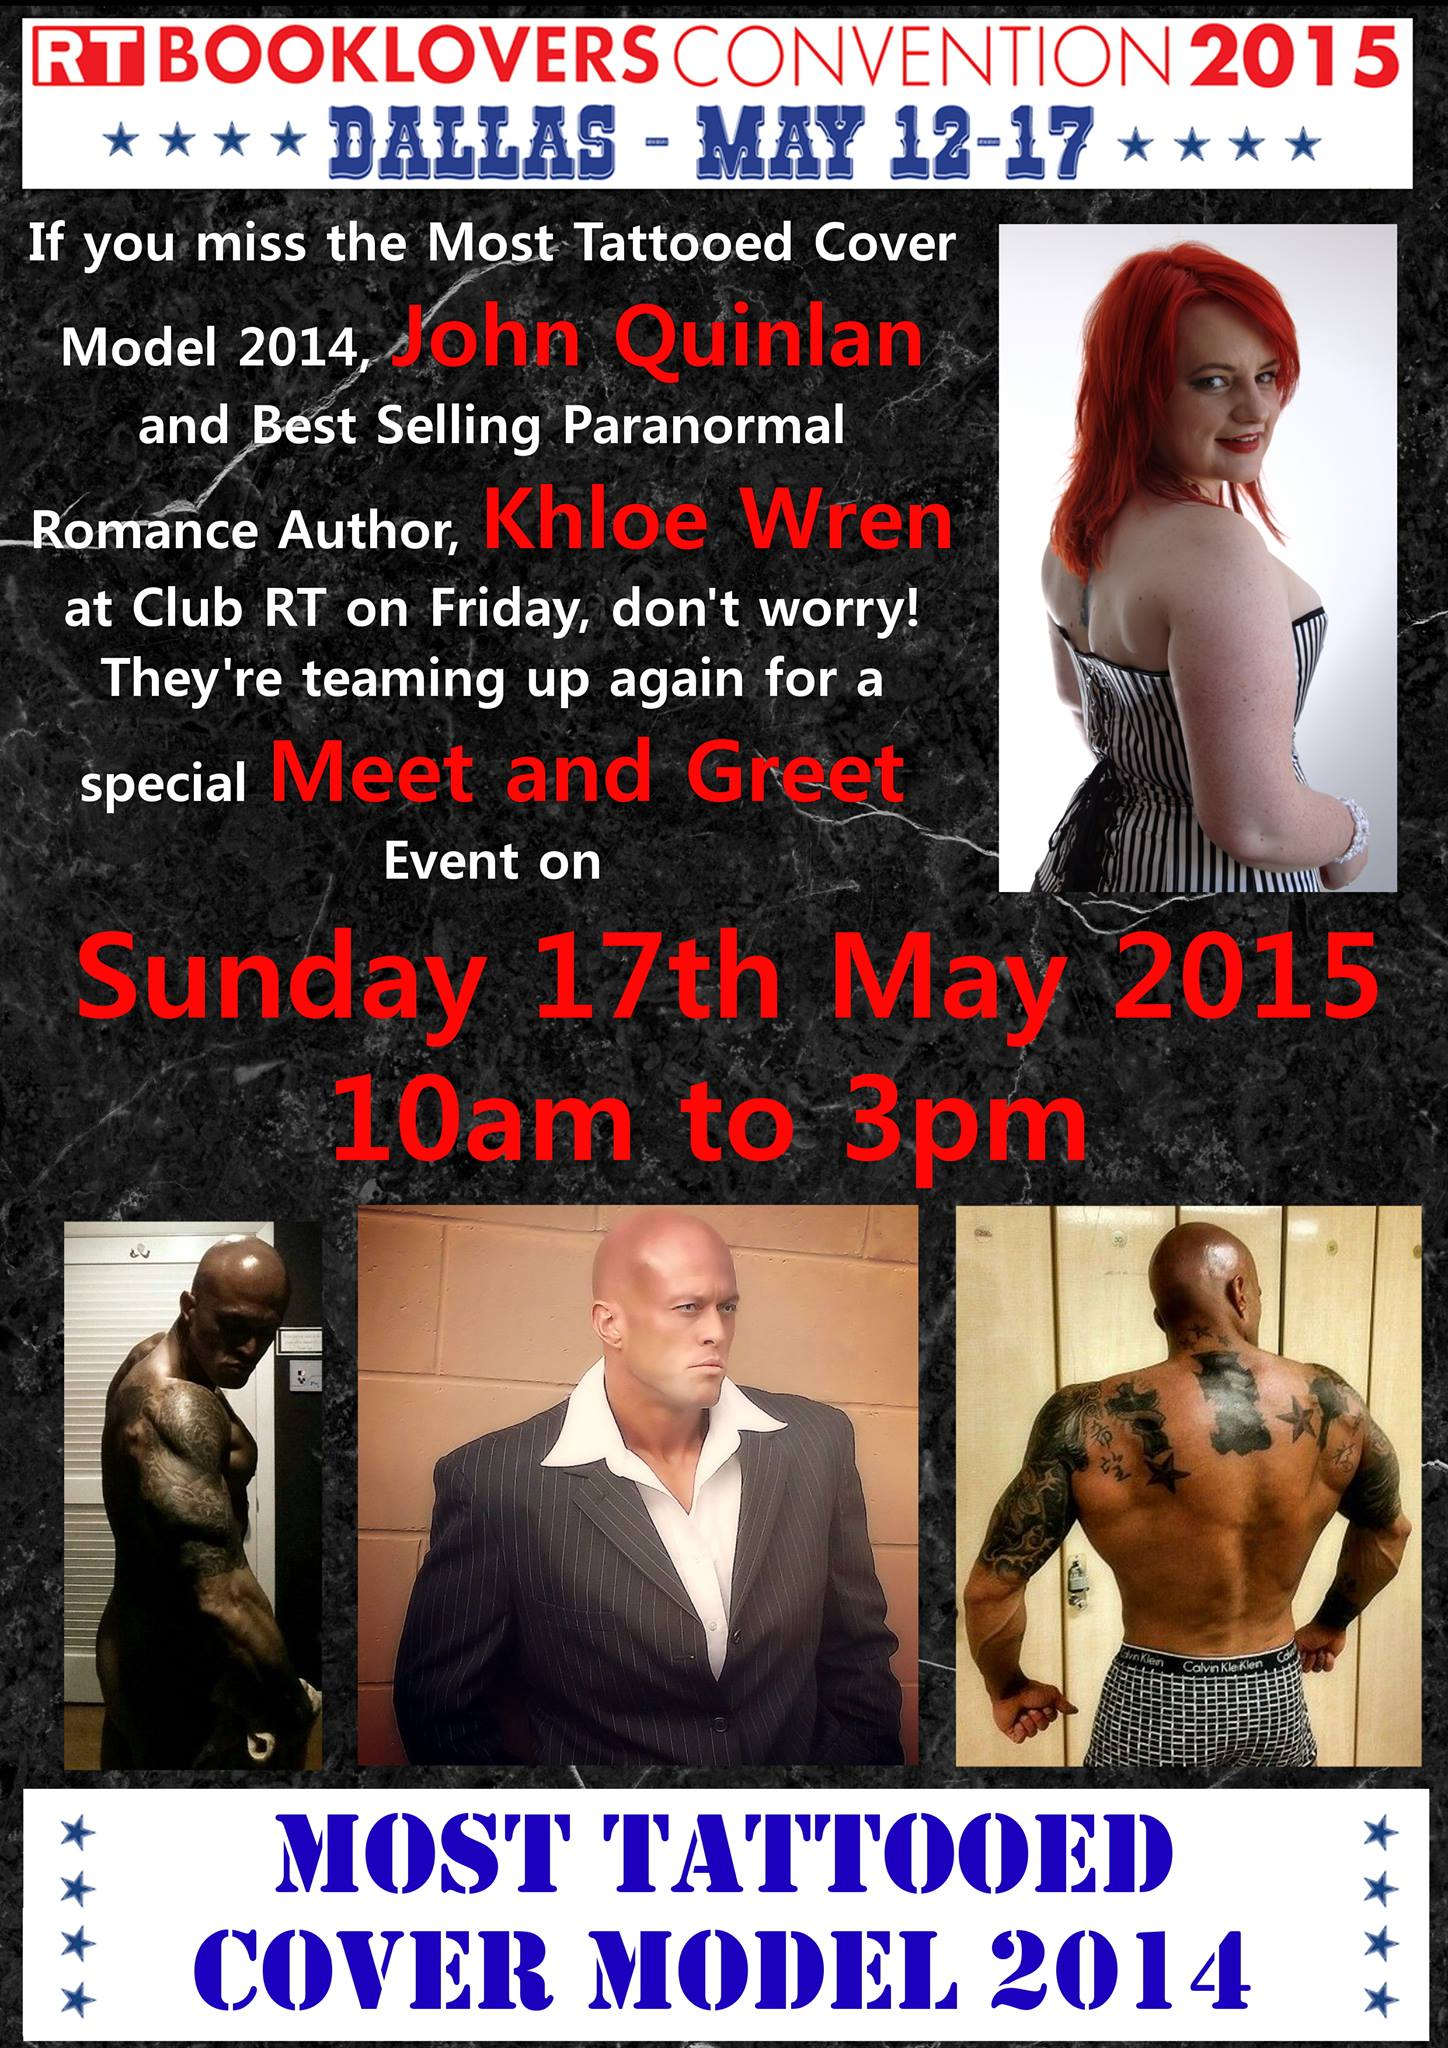 Most Tattooed Cover Model 2014 John Quinlan & Best Selling Paranormal Romance Author Khloe Wren Club RT Dallas, TX Meet and Greet on Sunday May 17, 2015 10am to 3pm #JohnQuinlan